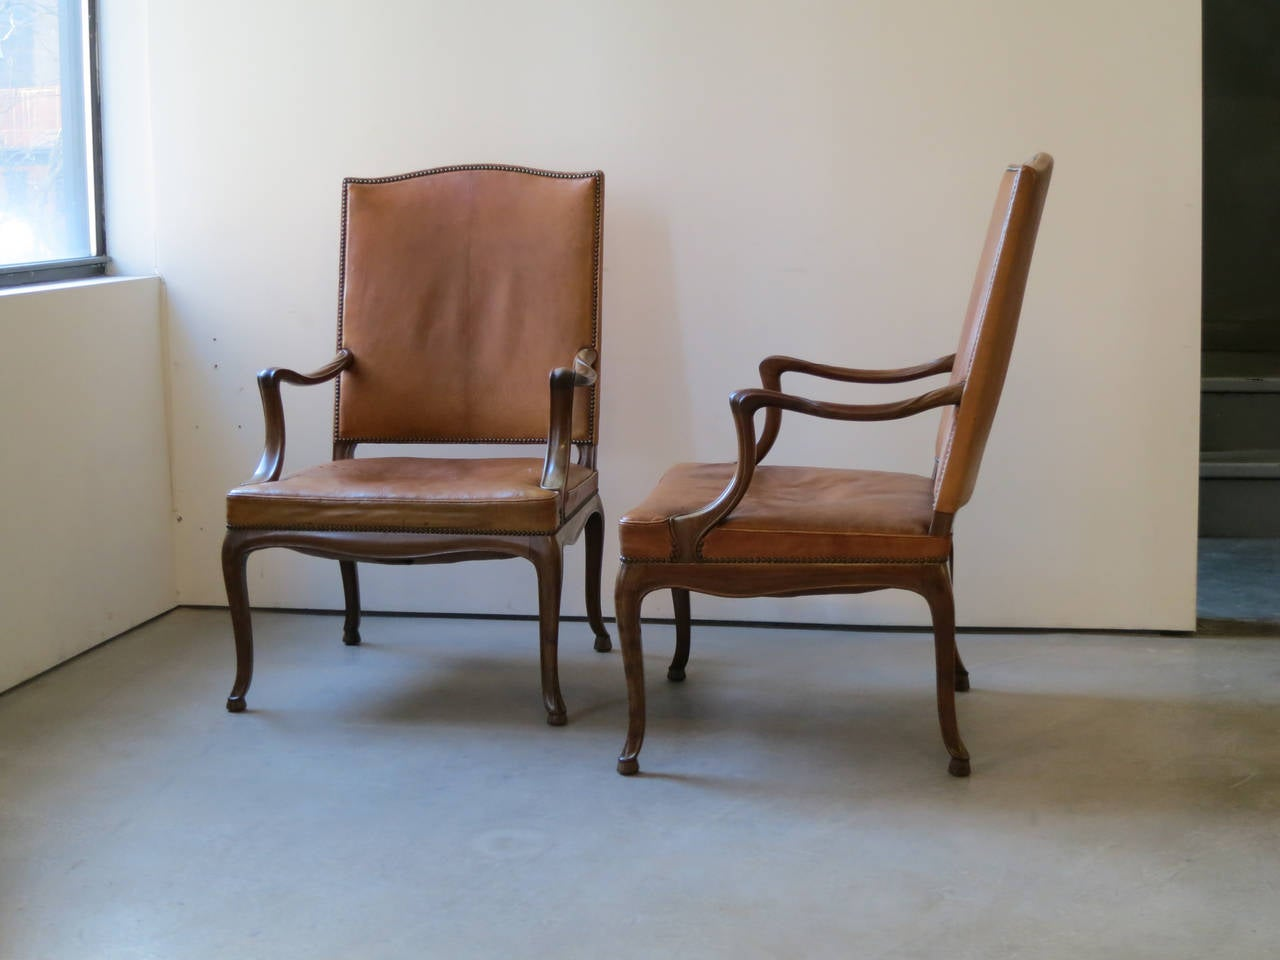 Scandinavian Modern Frits Henningsen Four Large 1930s Armchairs in Danish Rococo Style For Sale